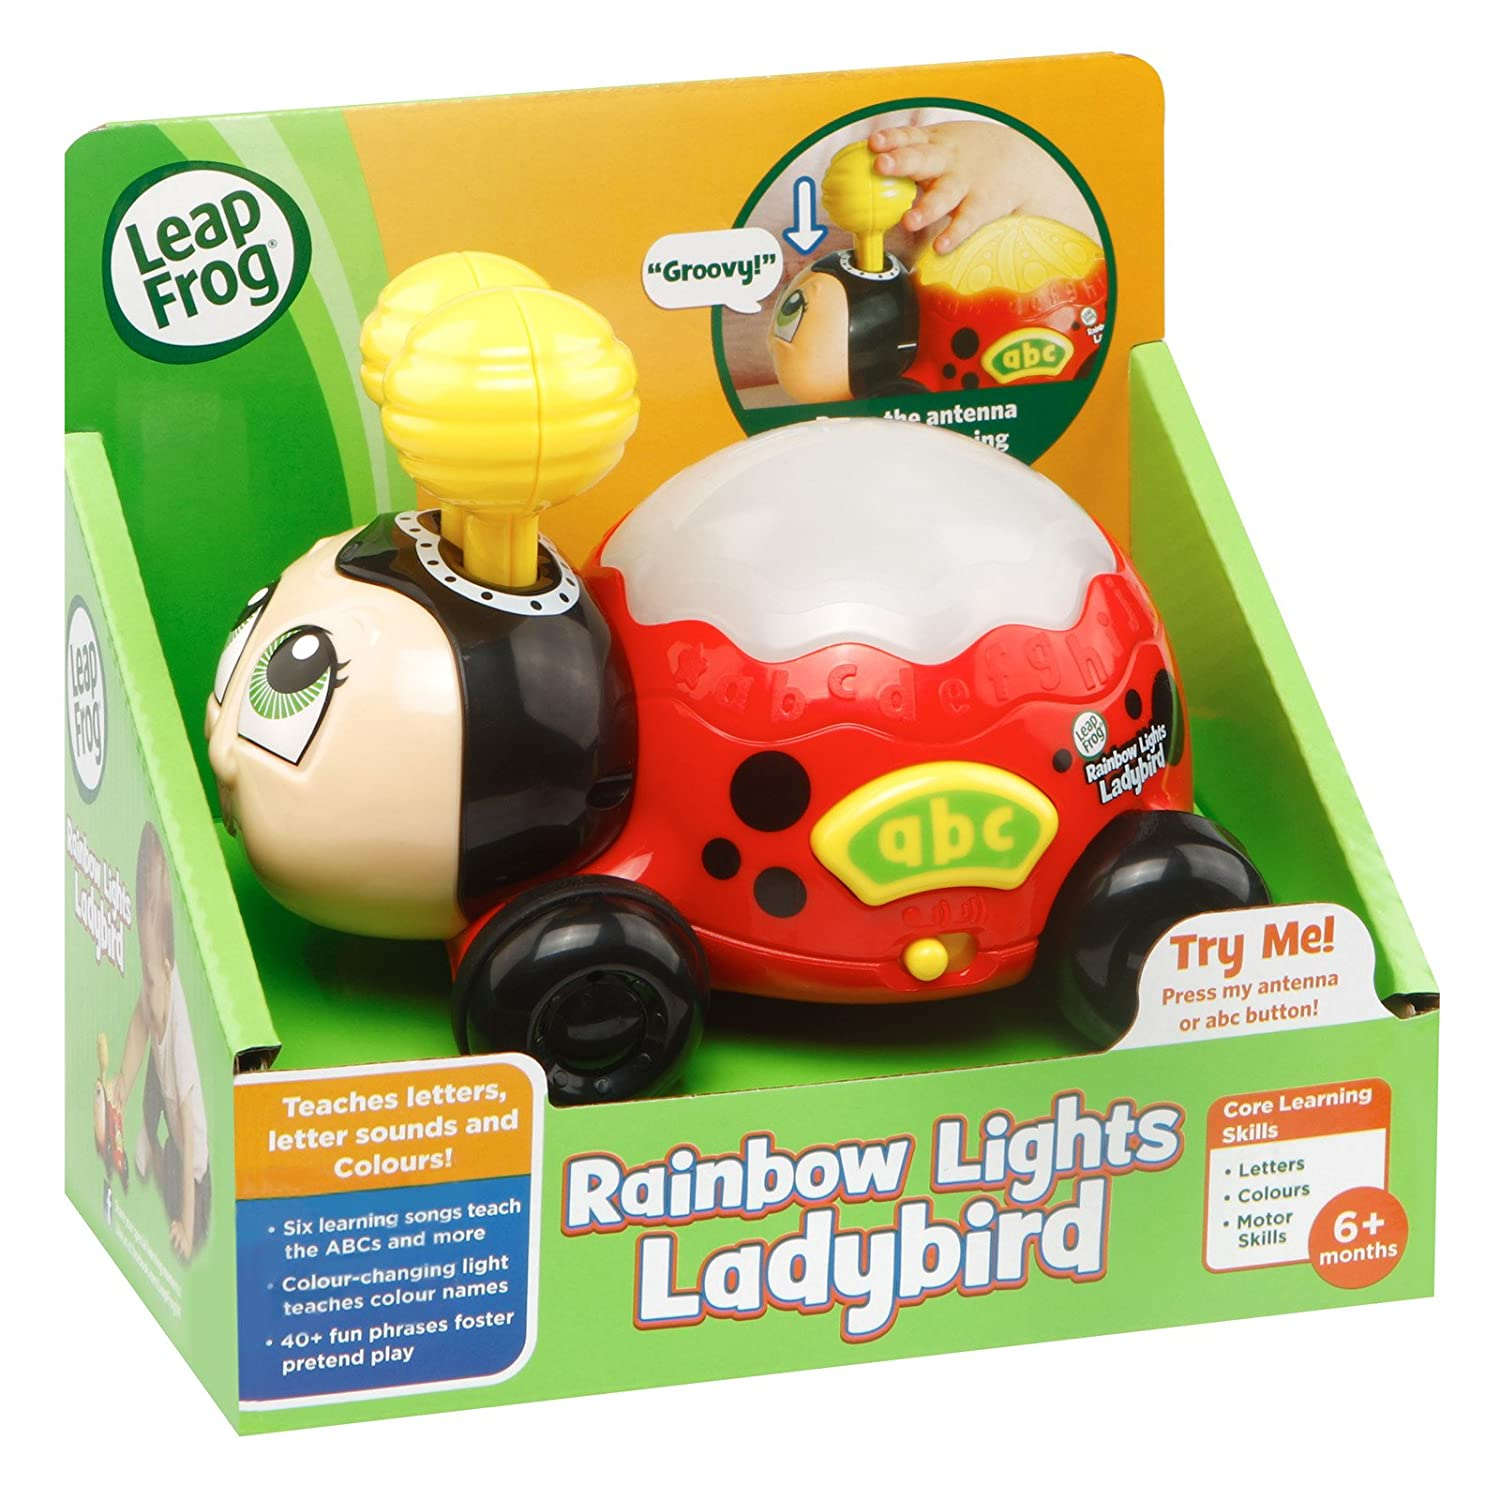 4ebfb3f35a93 LeapFrog 601603 Rainbow Lights Ladybird Toy: Amazon.co.uk: Toys & Games